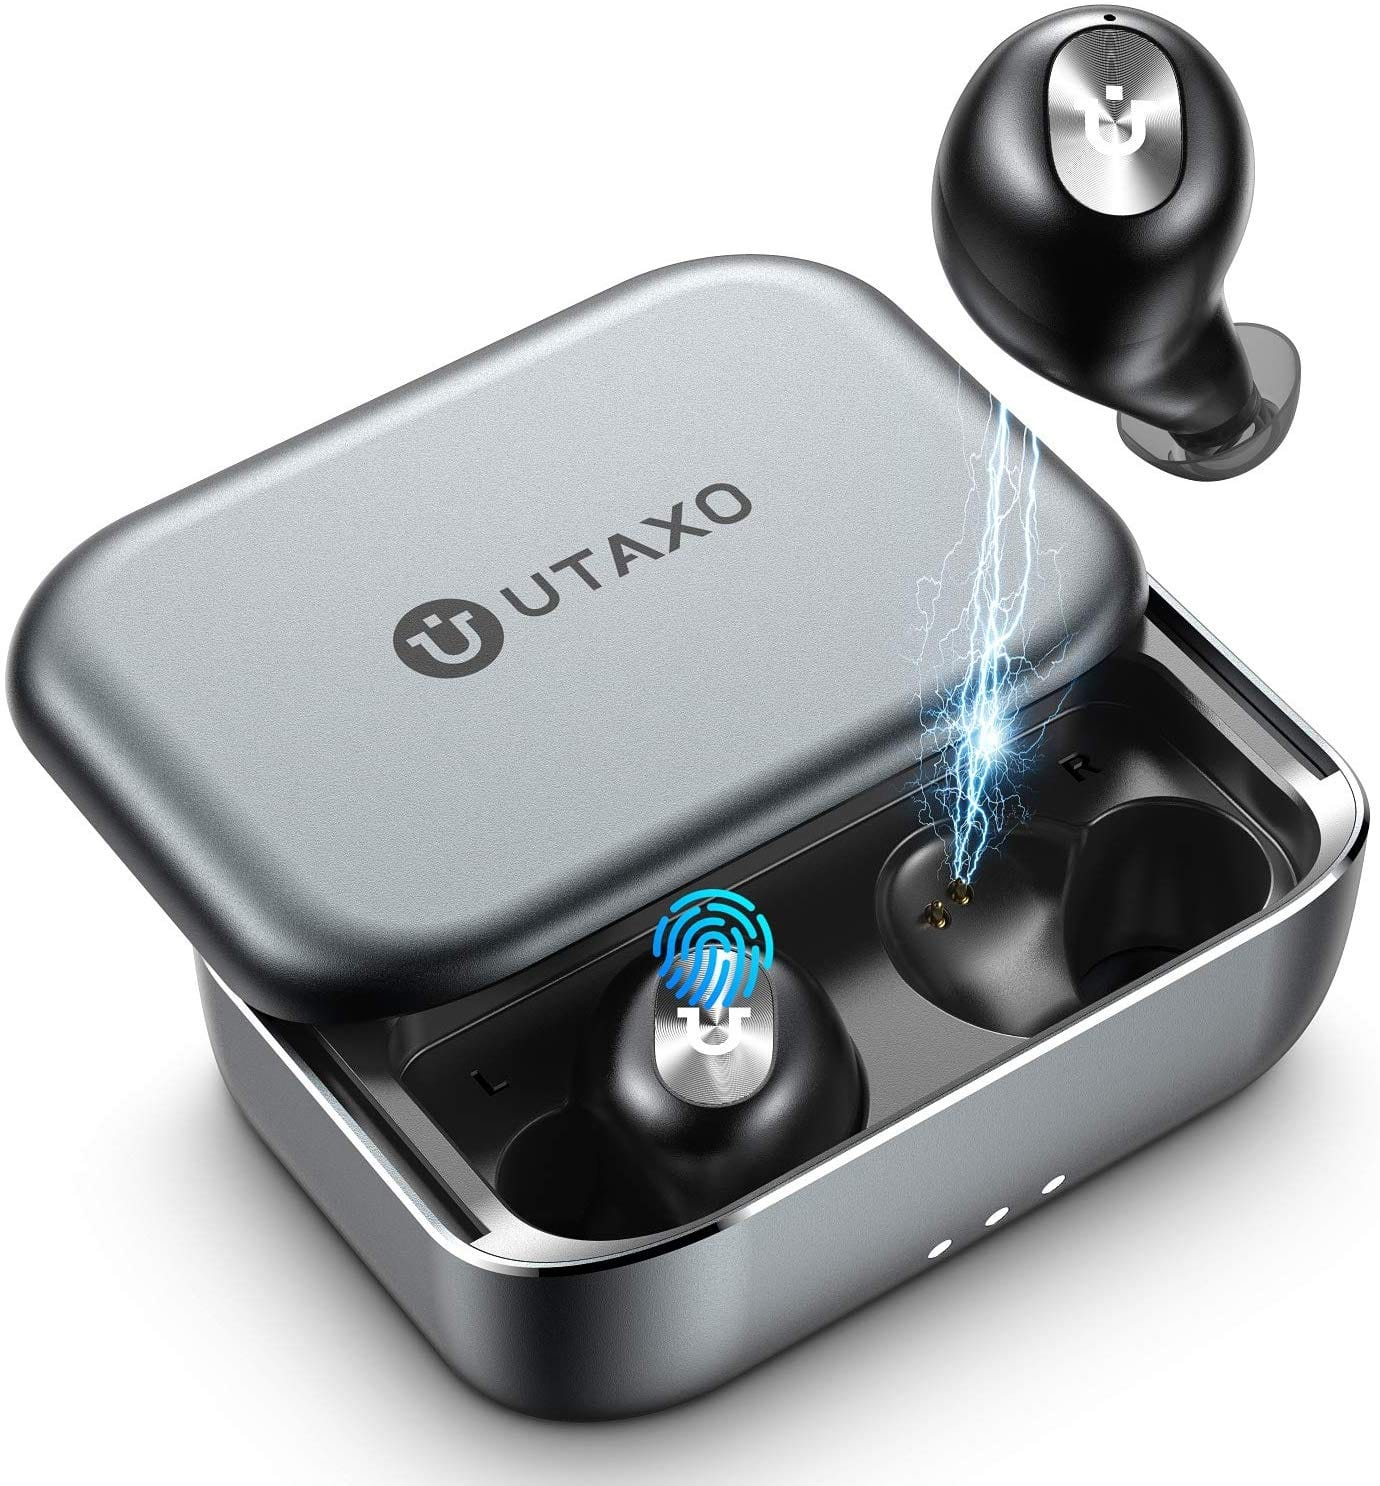 Utaxo Wireless Earbuds with Aluminum Charging Case, IPX7 Waterproof, 100Hours Playtime $32.49